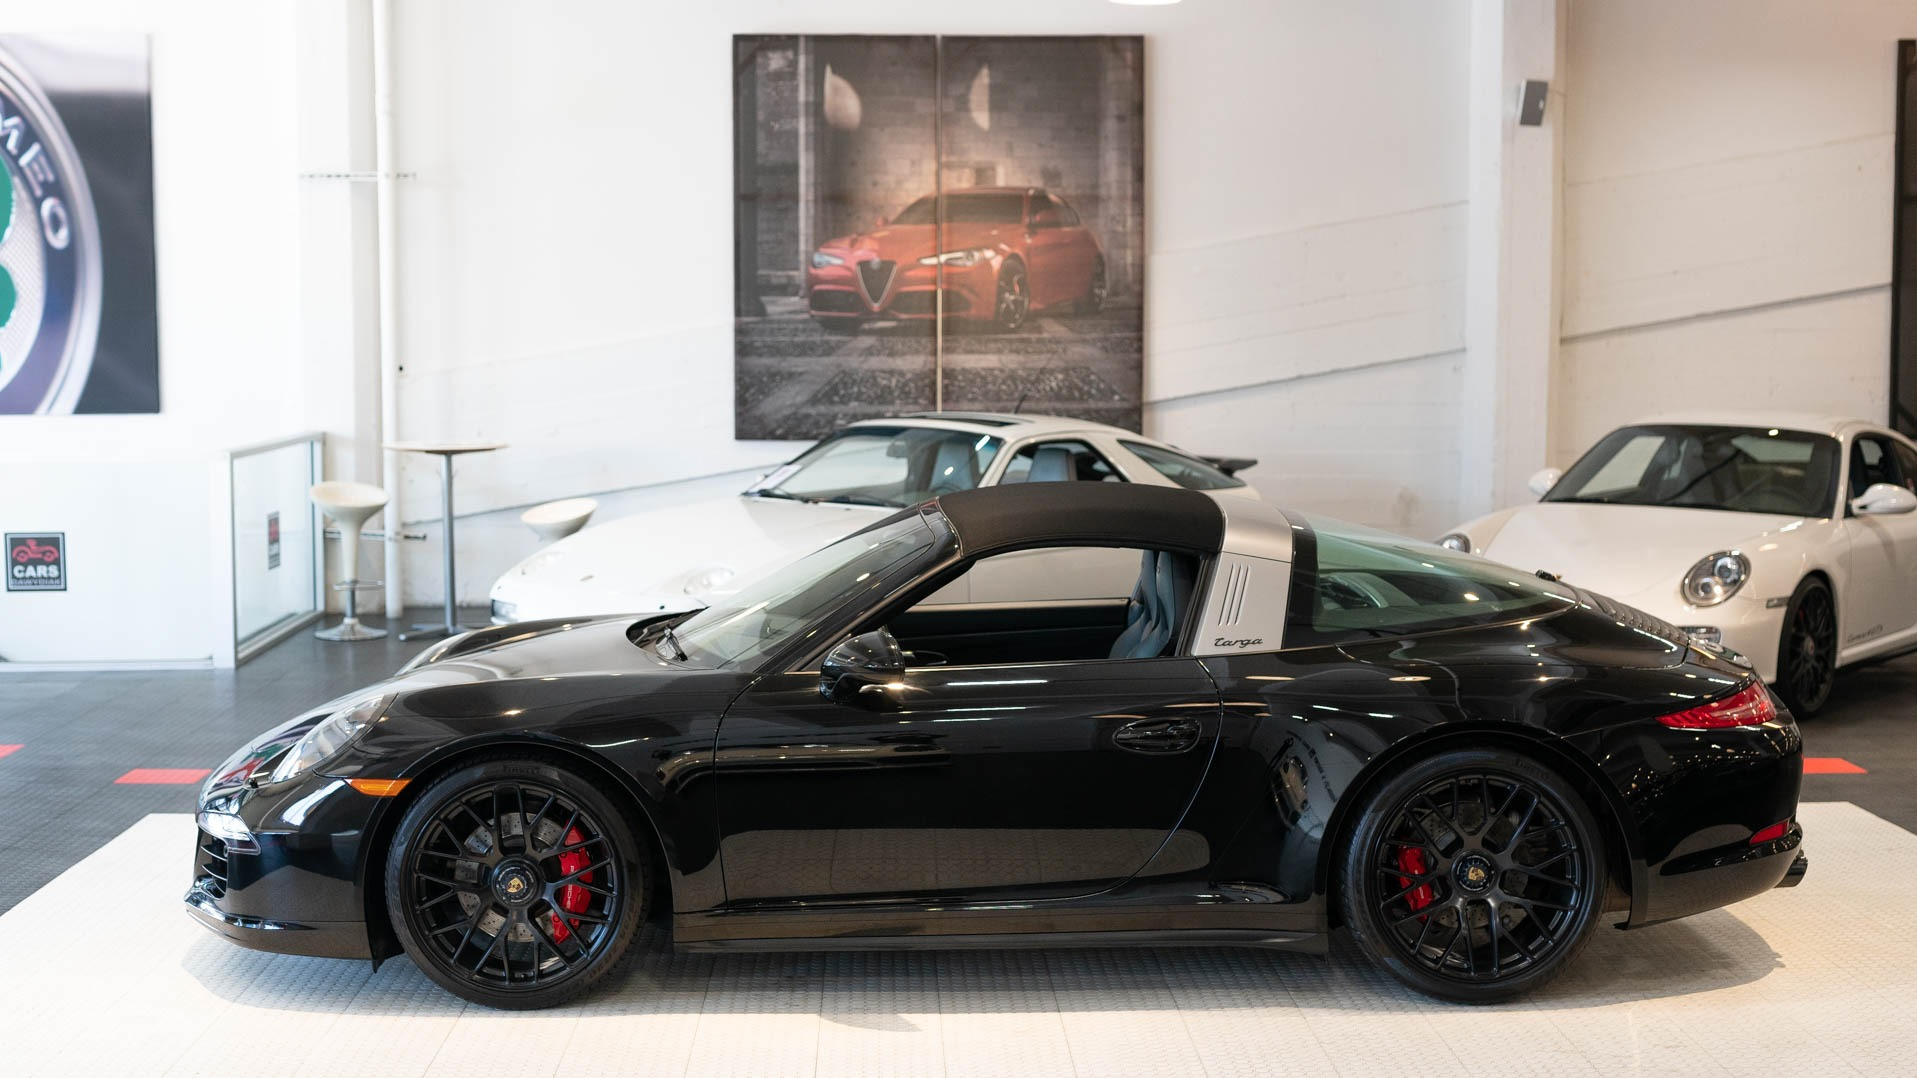 Used 2016 Porsche 911 Targa 4 Gts For Sale 94 900 Cars Dawydiak Consignment Stock 190701